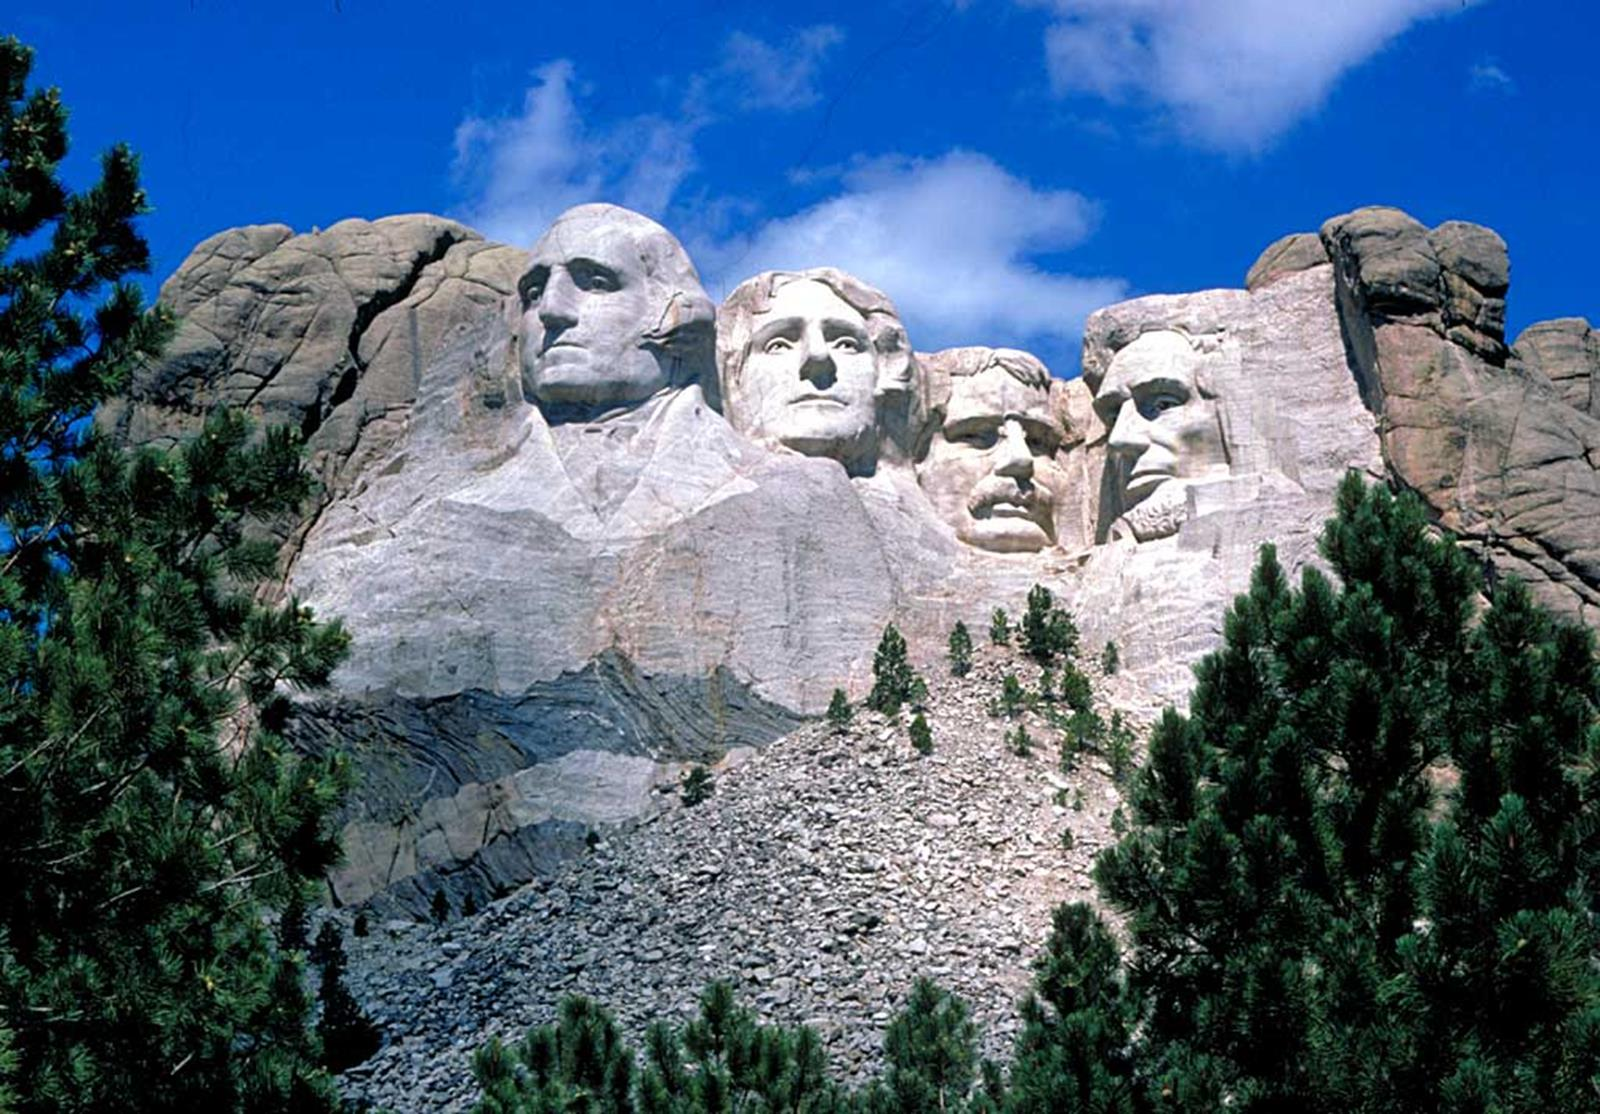 Mount Rushmore. Credit: Wikipedia